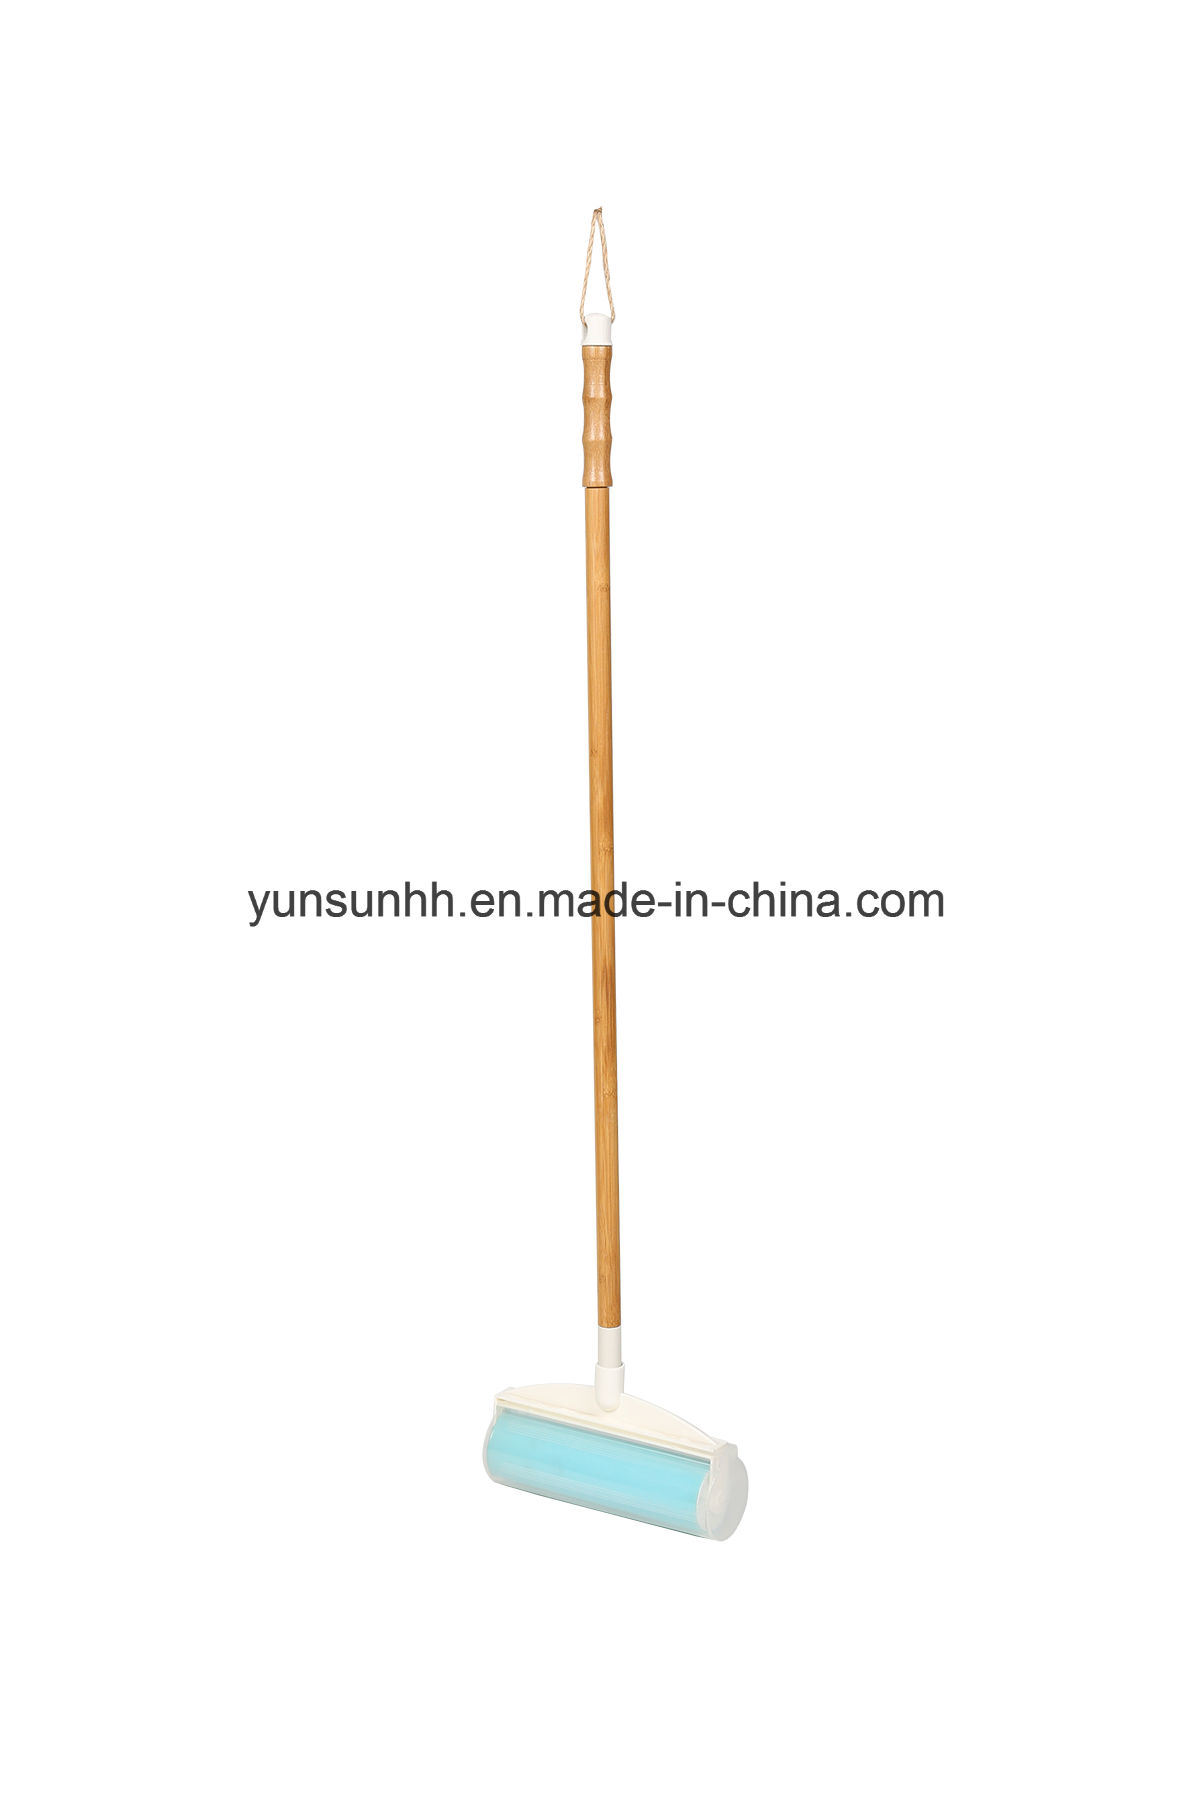 Microfiber Mop & Broom, Cleaning Floor